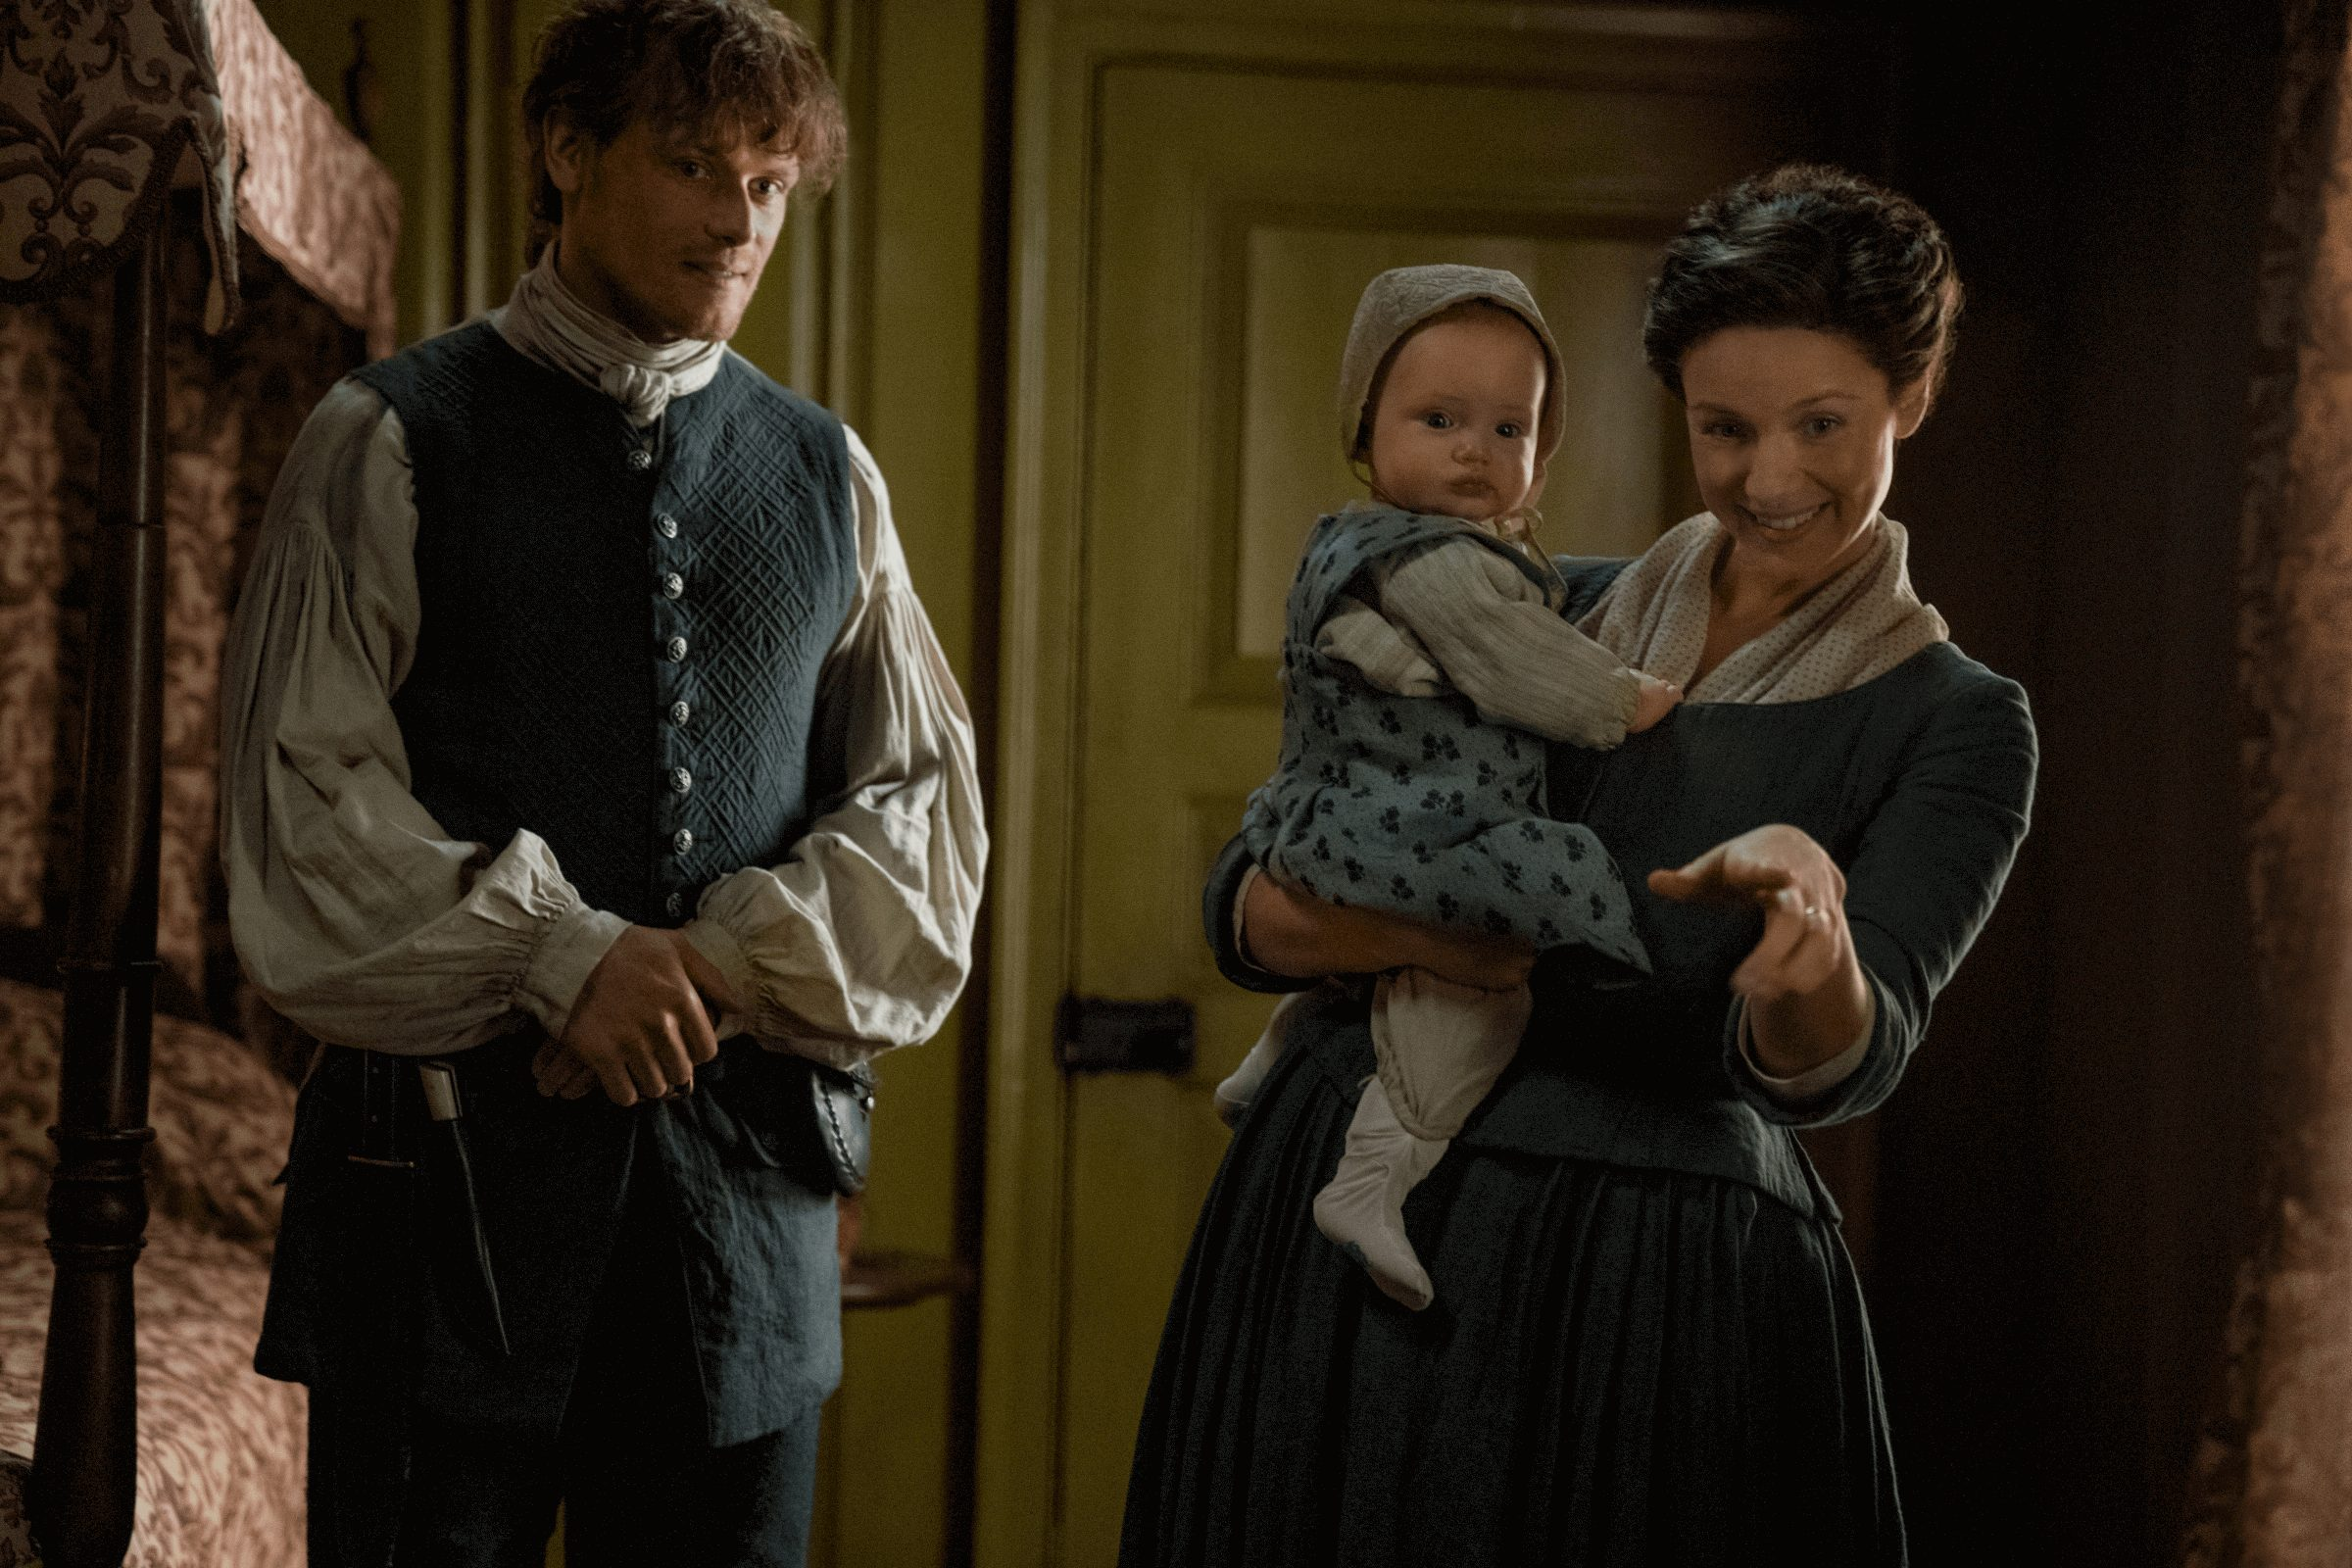 Preview: Outlander - Wilmington - FANdemonium Network